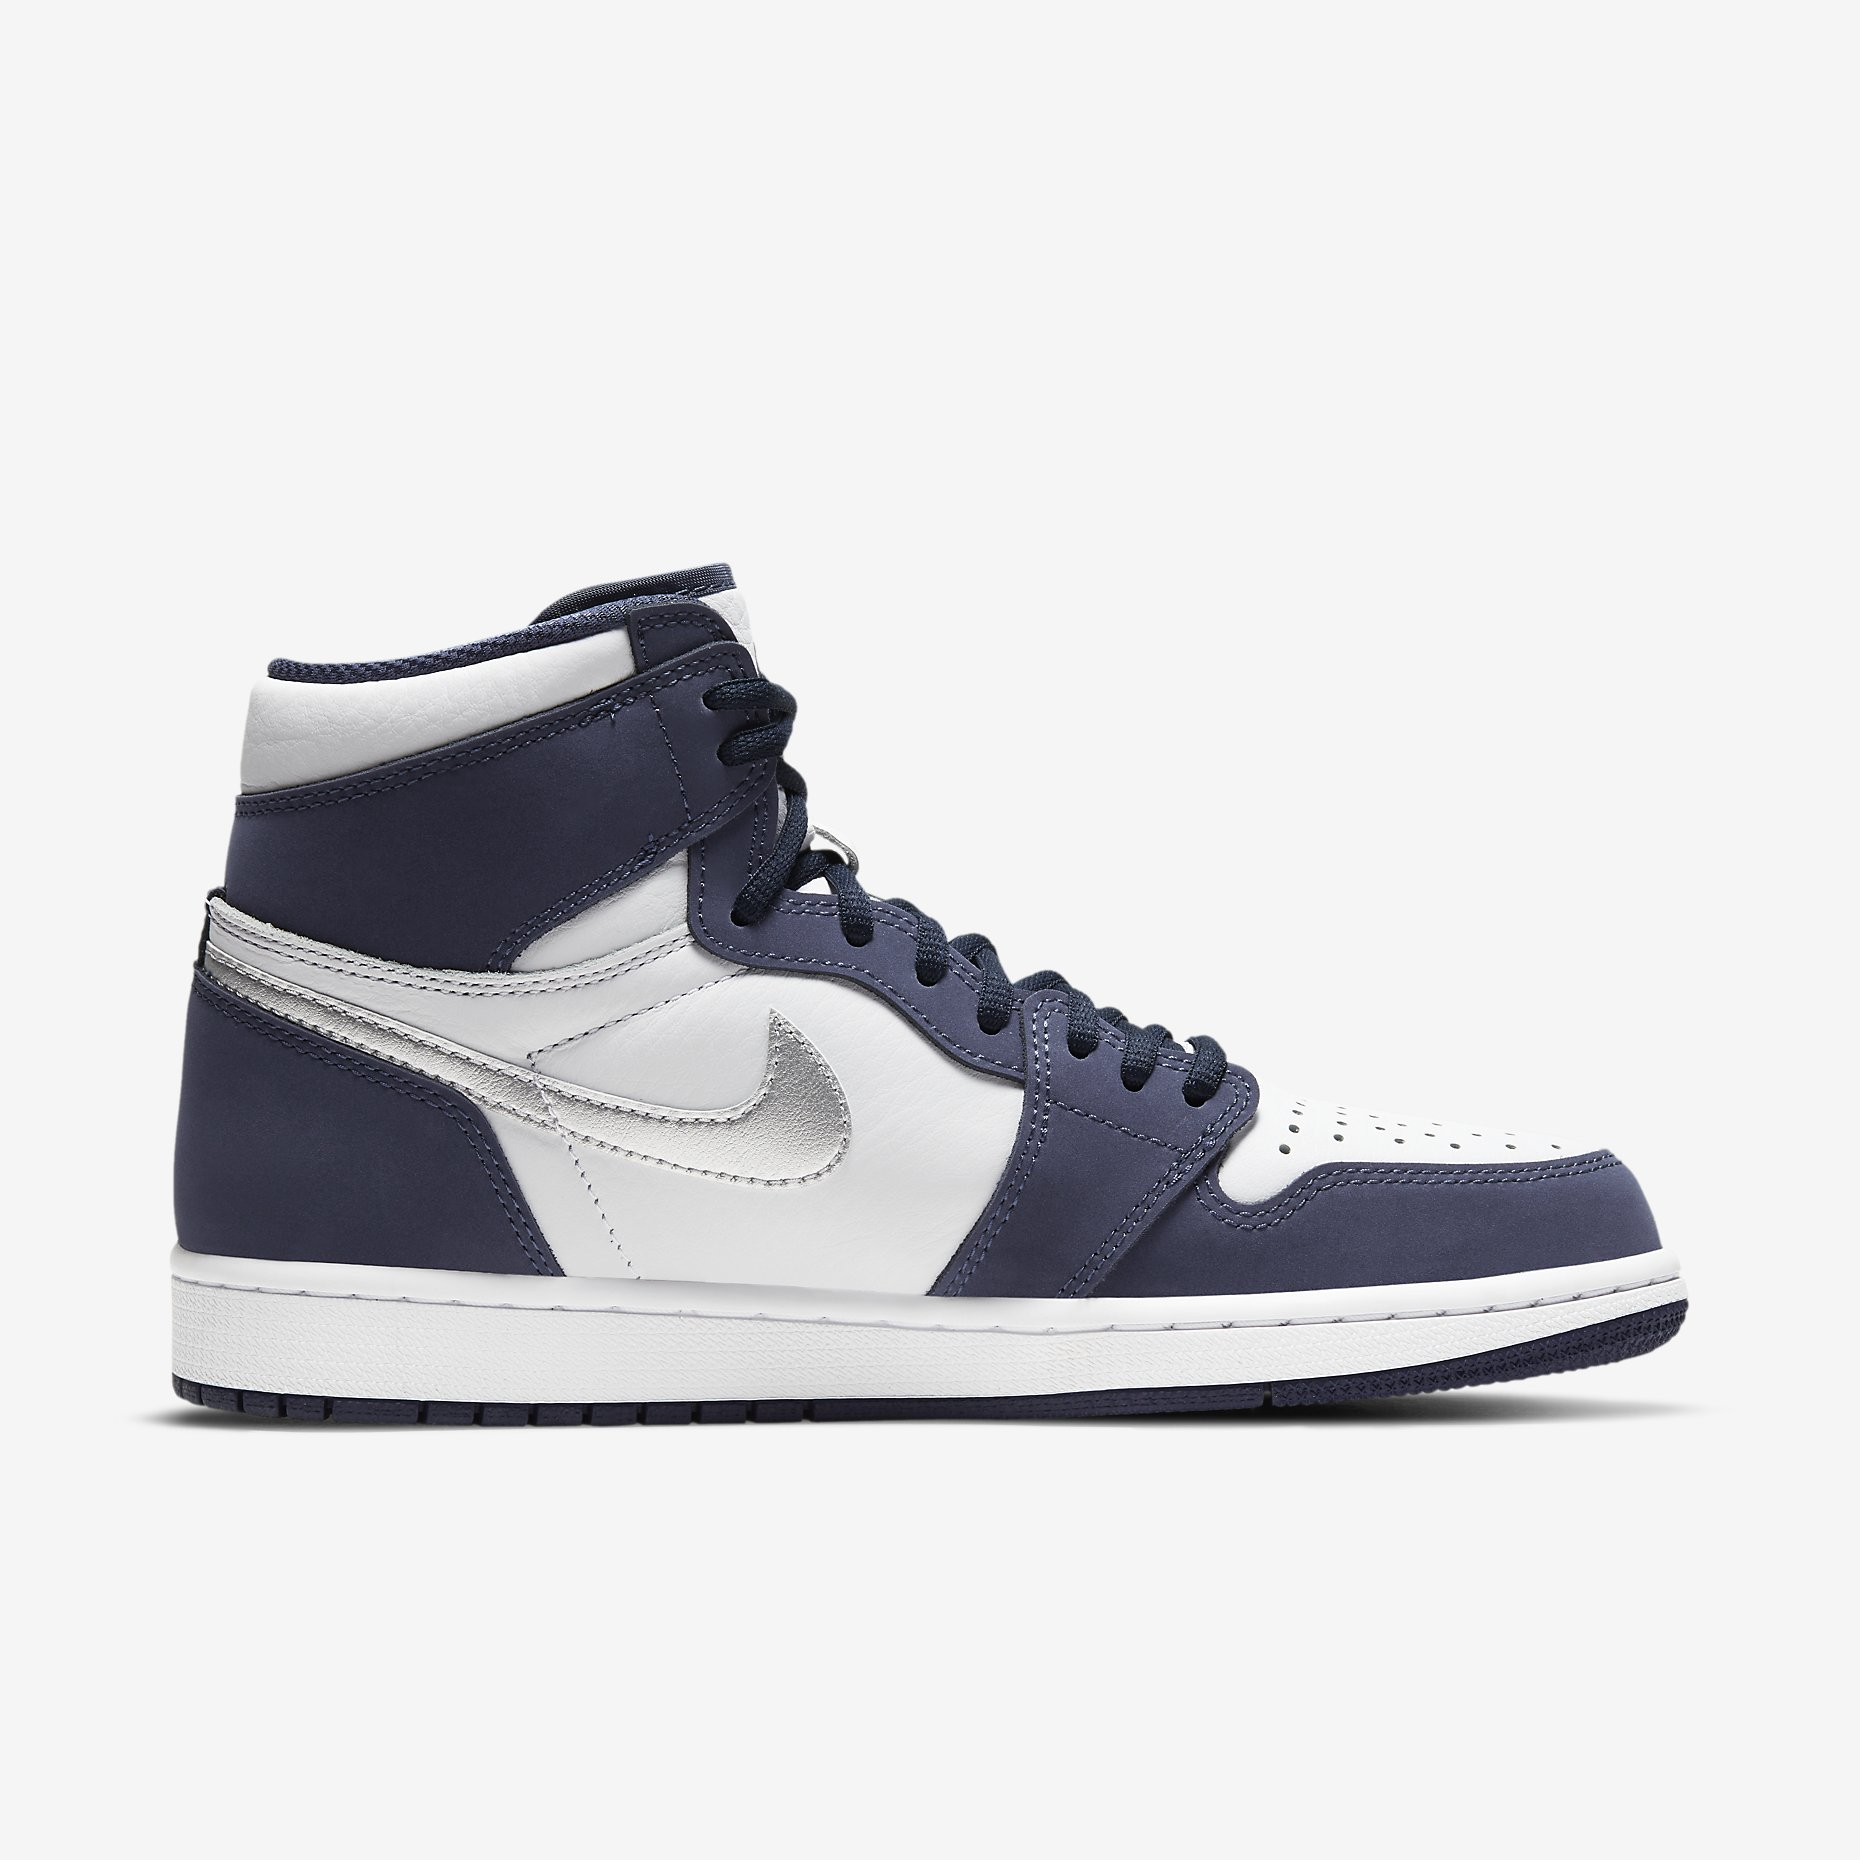 Air Jordan 1 High Retro OG CO.JP 'Midnight Navy'}